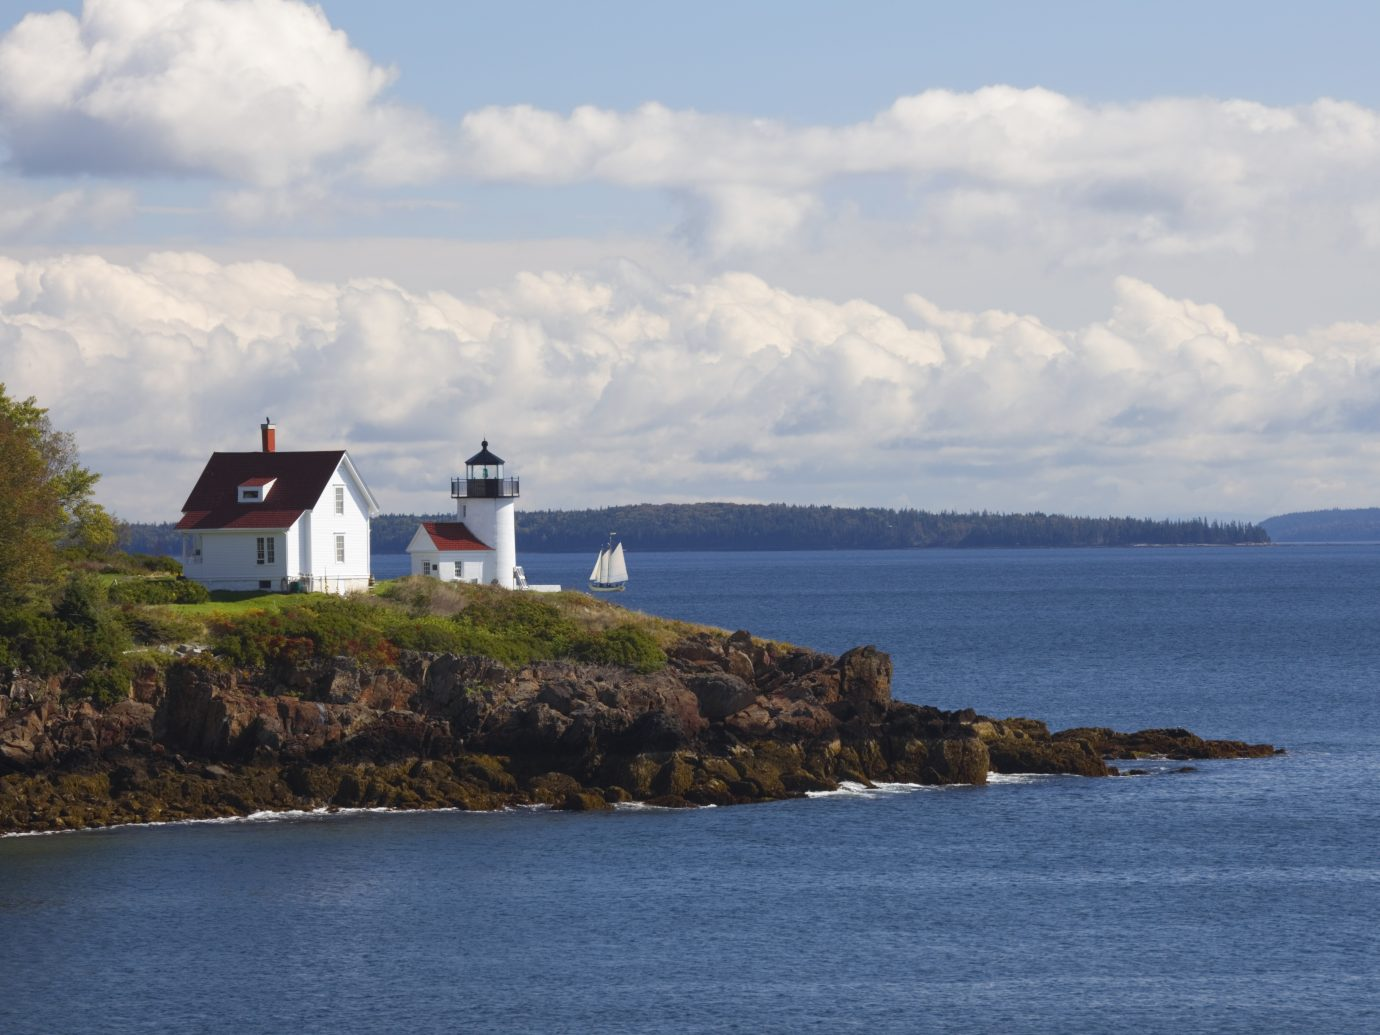 Curtis Island Lighthouse and sailboat in Camden (Maine) Harbor.